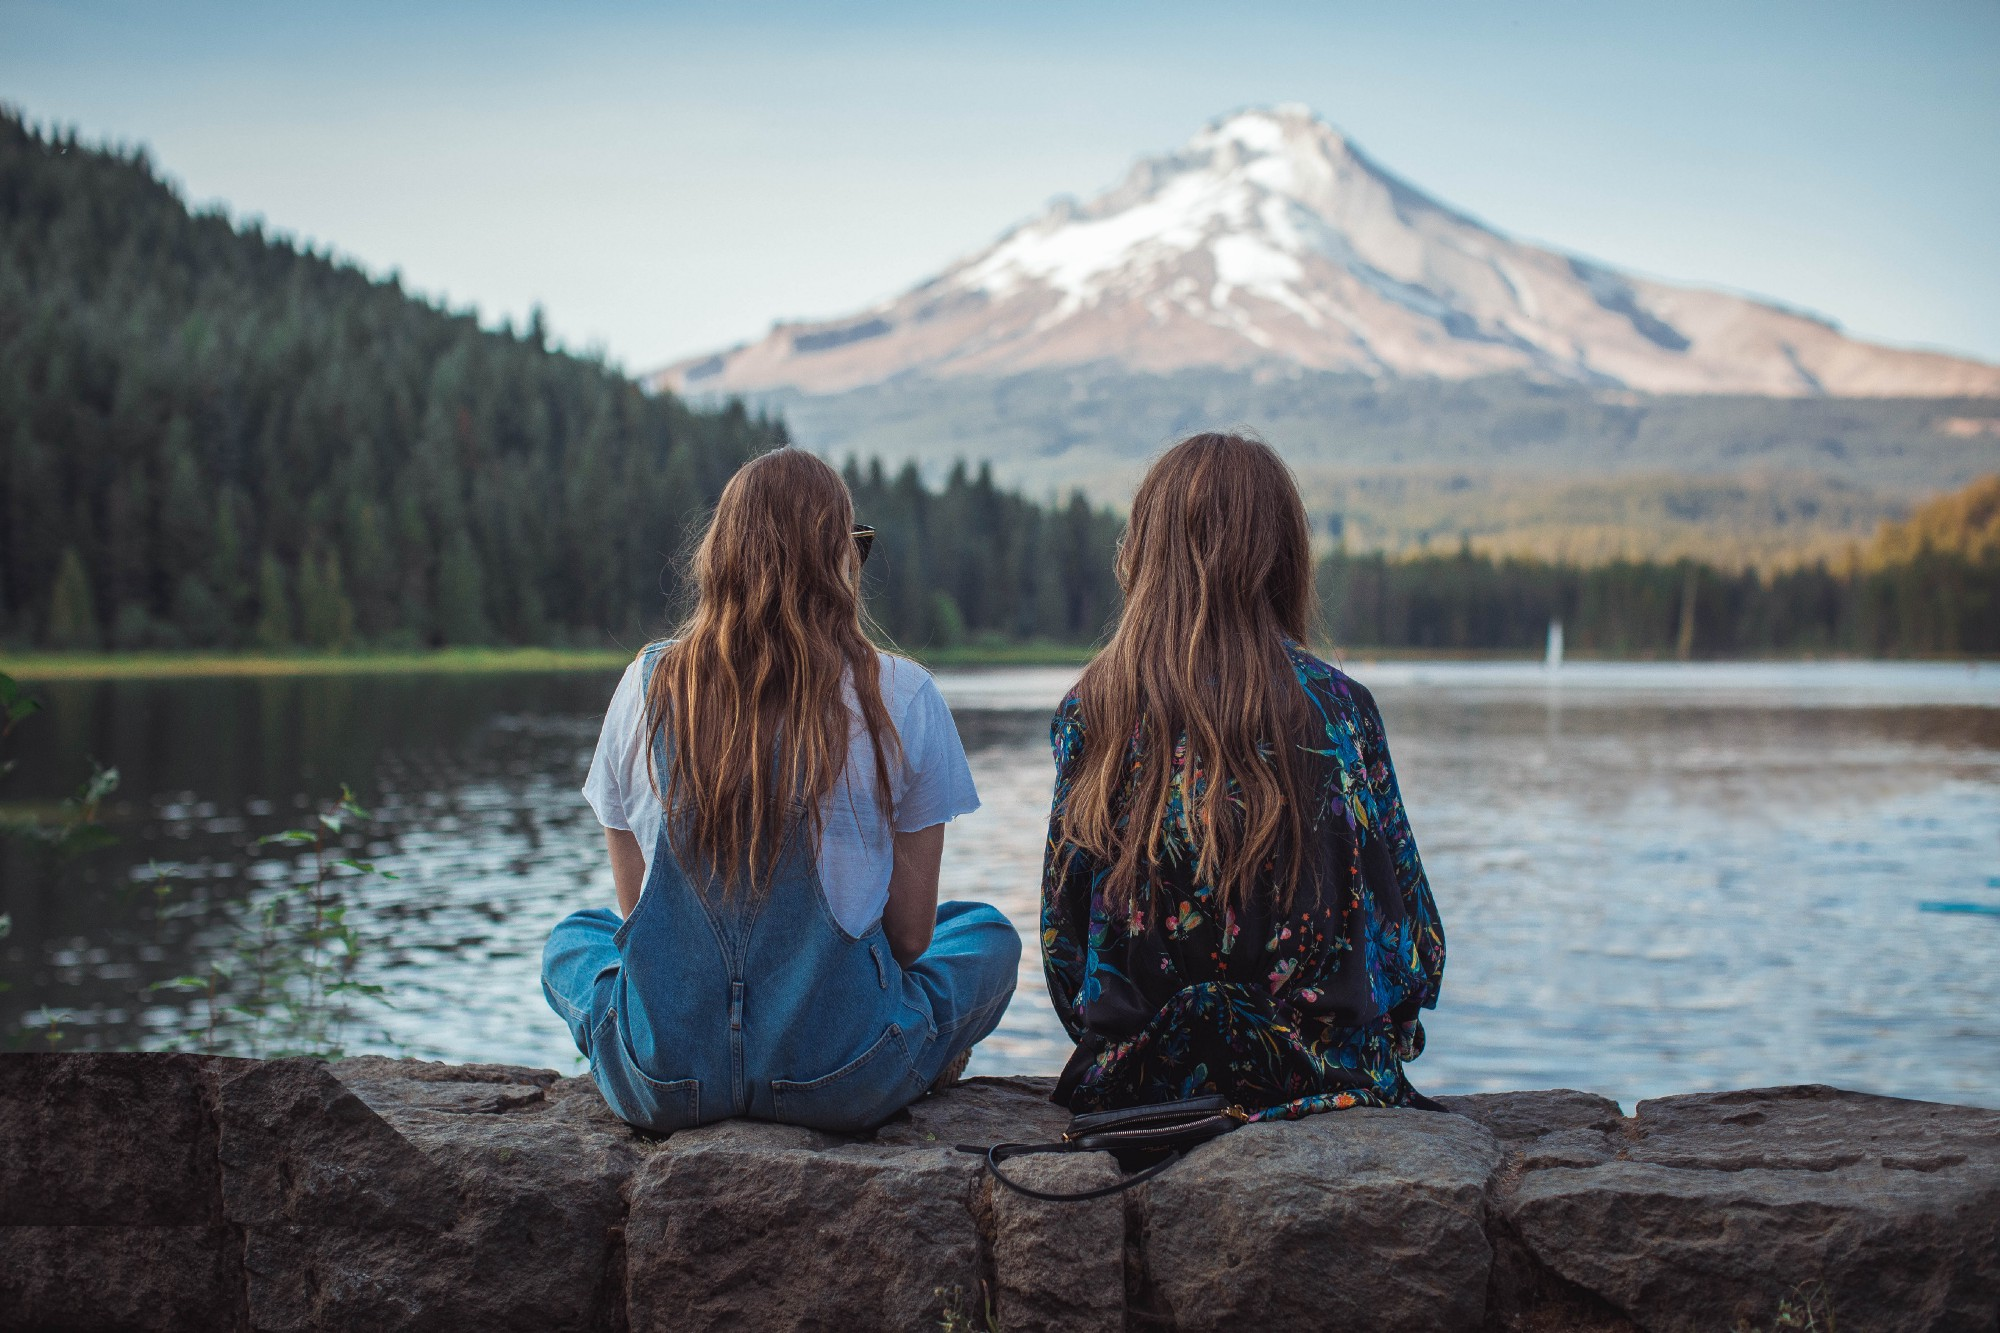 Two women sitting on pier overlooking lake and mountains.